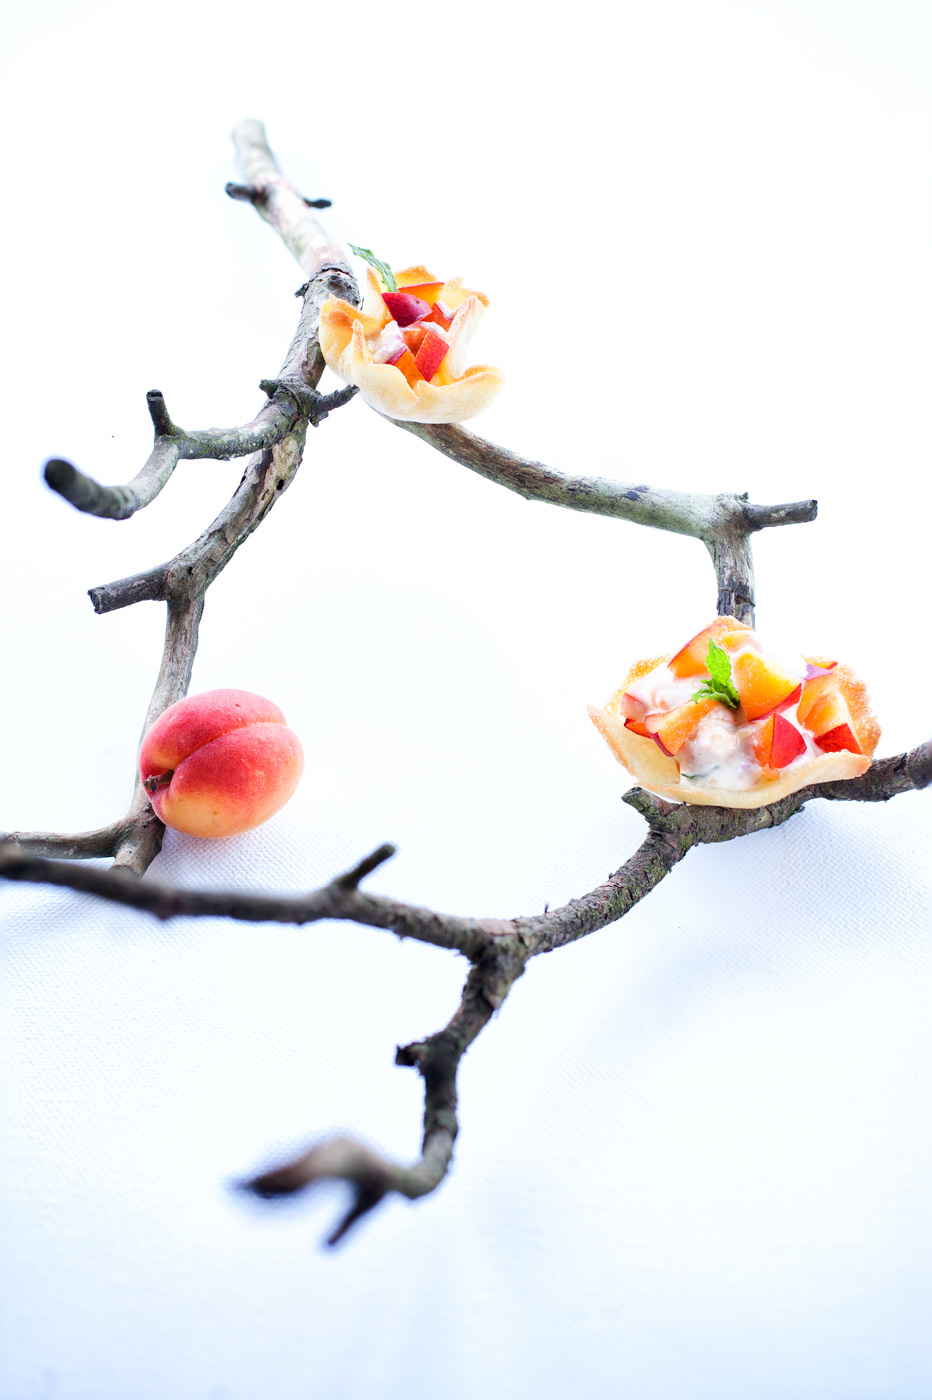 Recipe image depicting shortcrust pastries placed on a branch